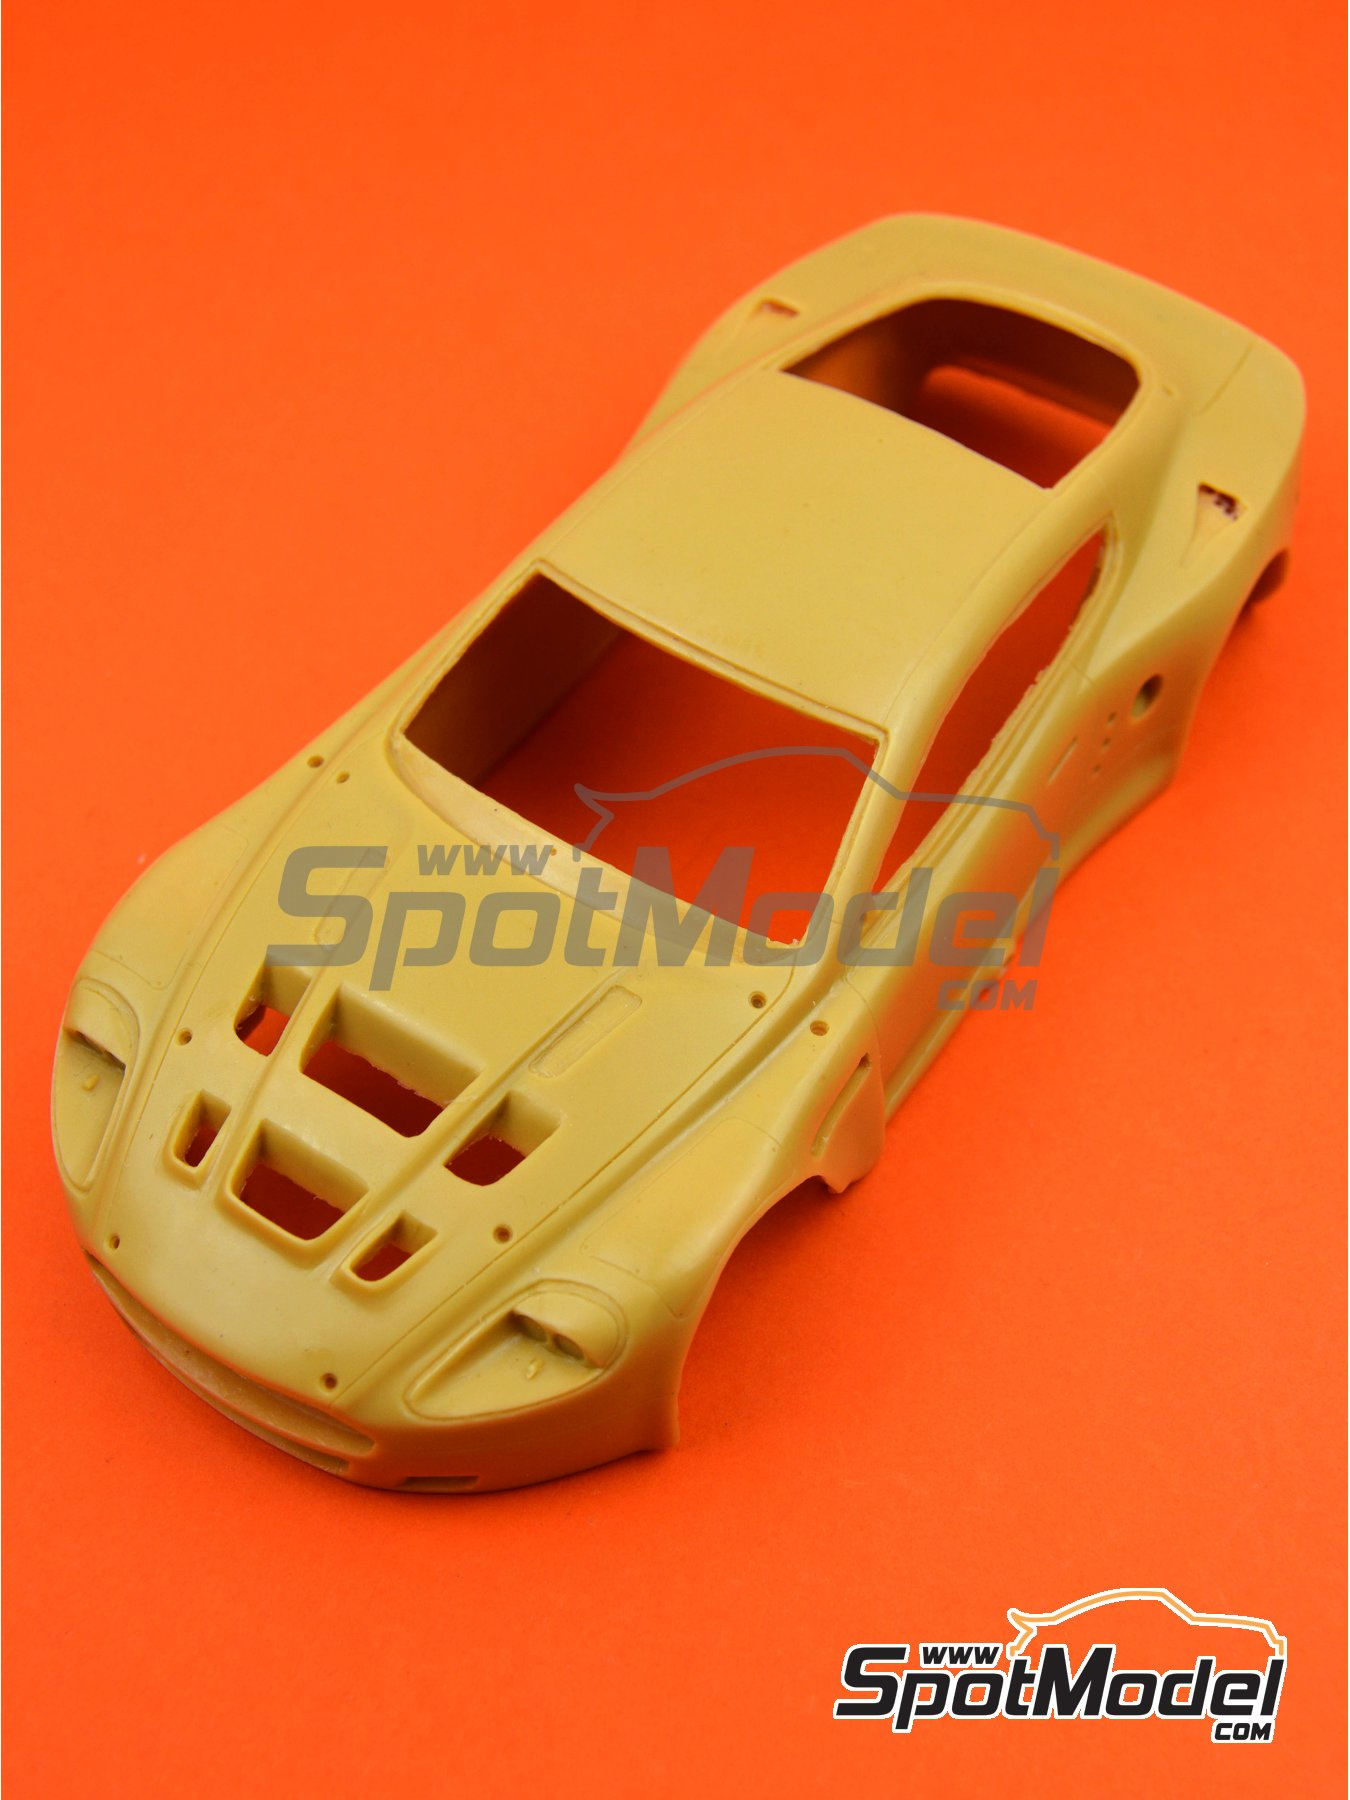 Aston Martin DBR9 | Bodywork in 1/24 scale manufactured by Renaissance Models (ref. 24-24-BODY) image